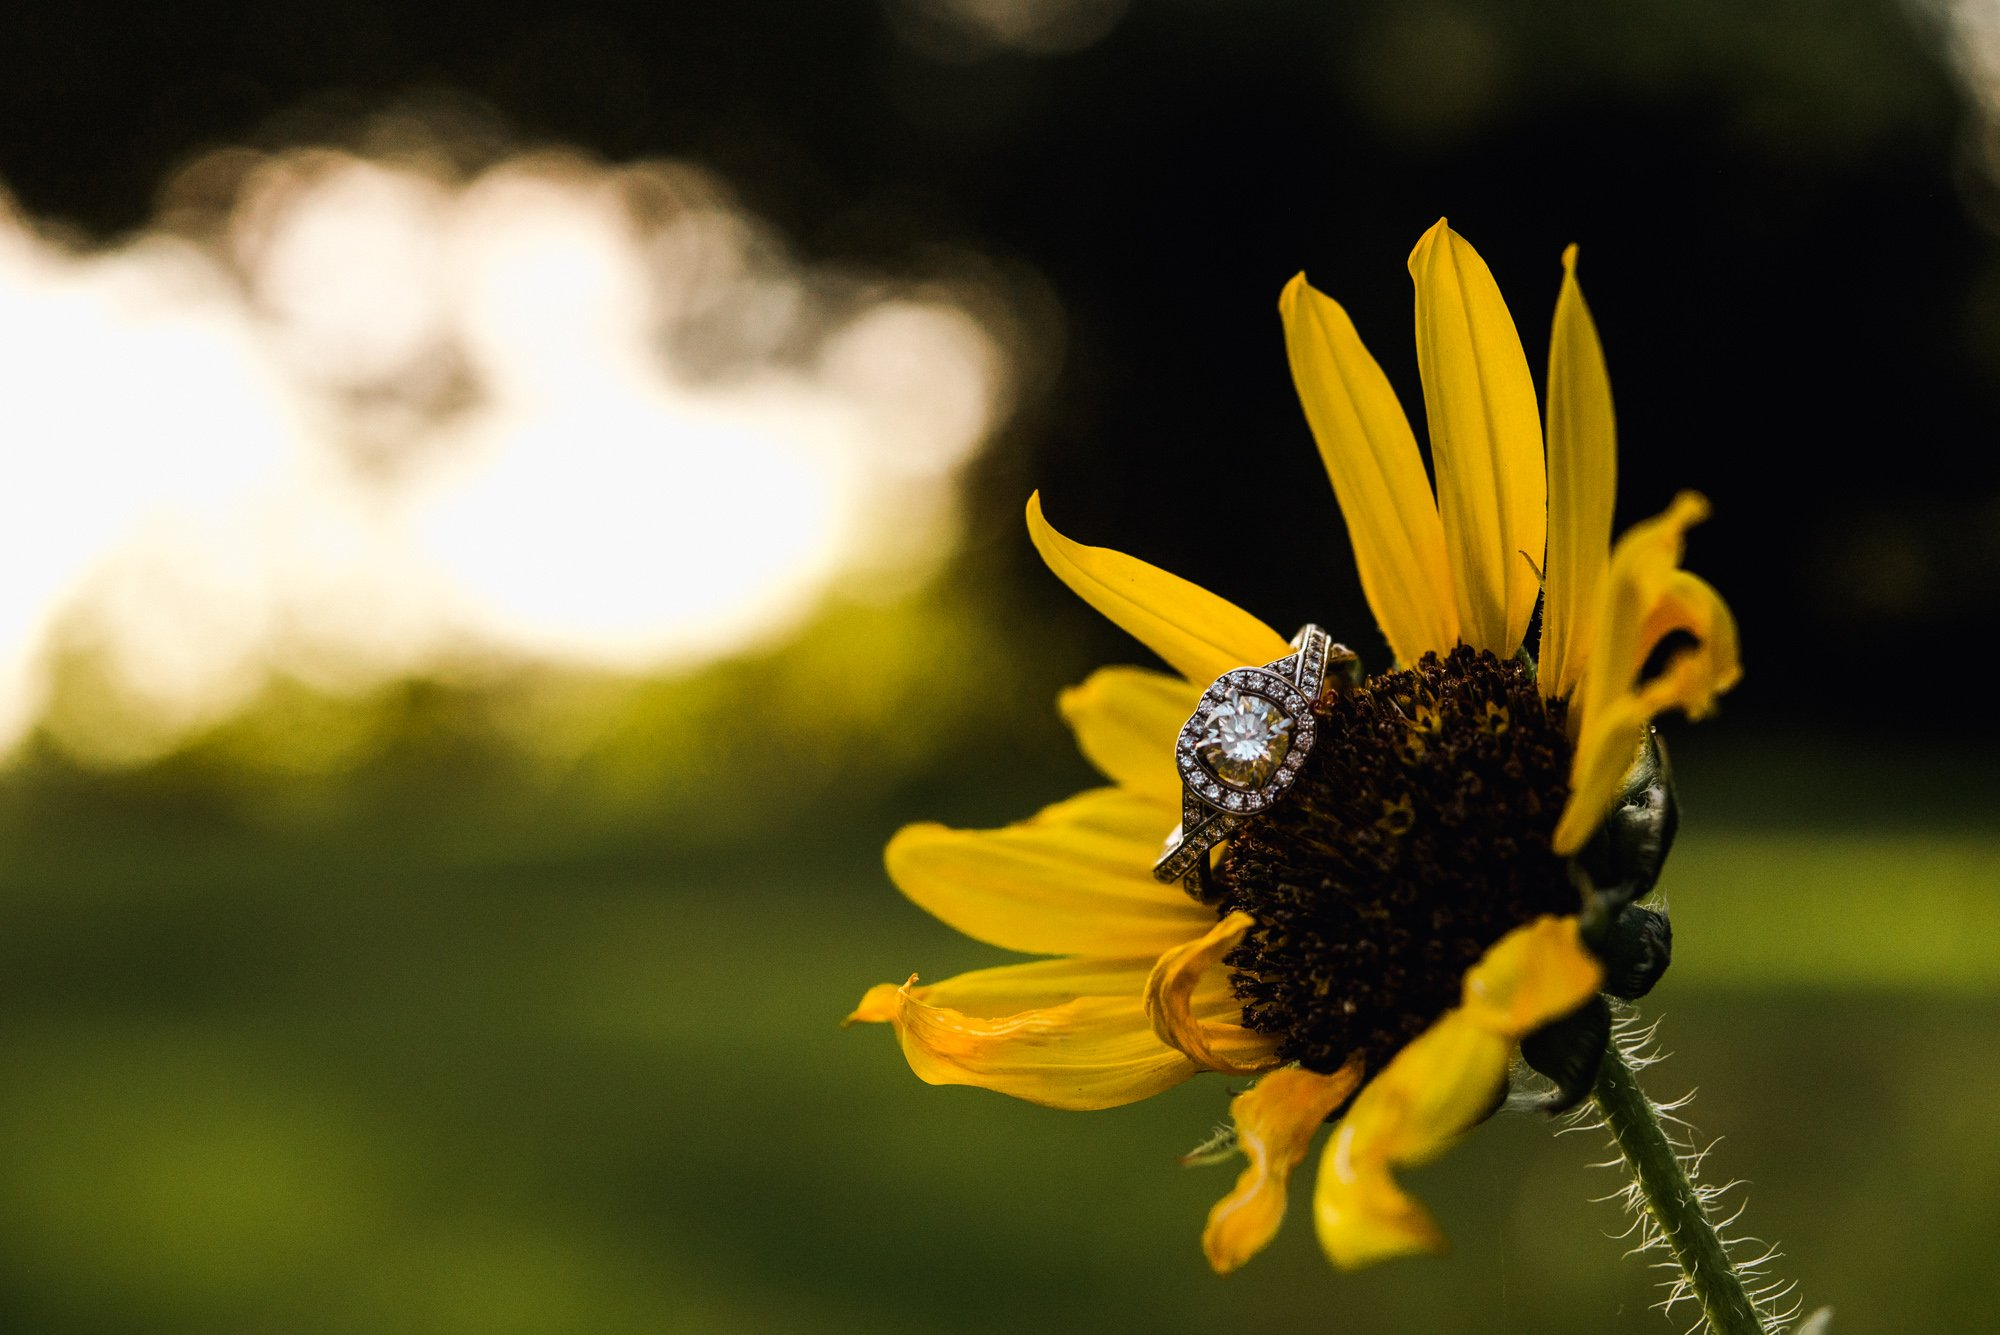 detail photograph of a ring on a sunflower, summer ring shot detail, austin wedding photographer for creative couples